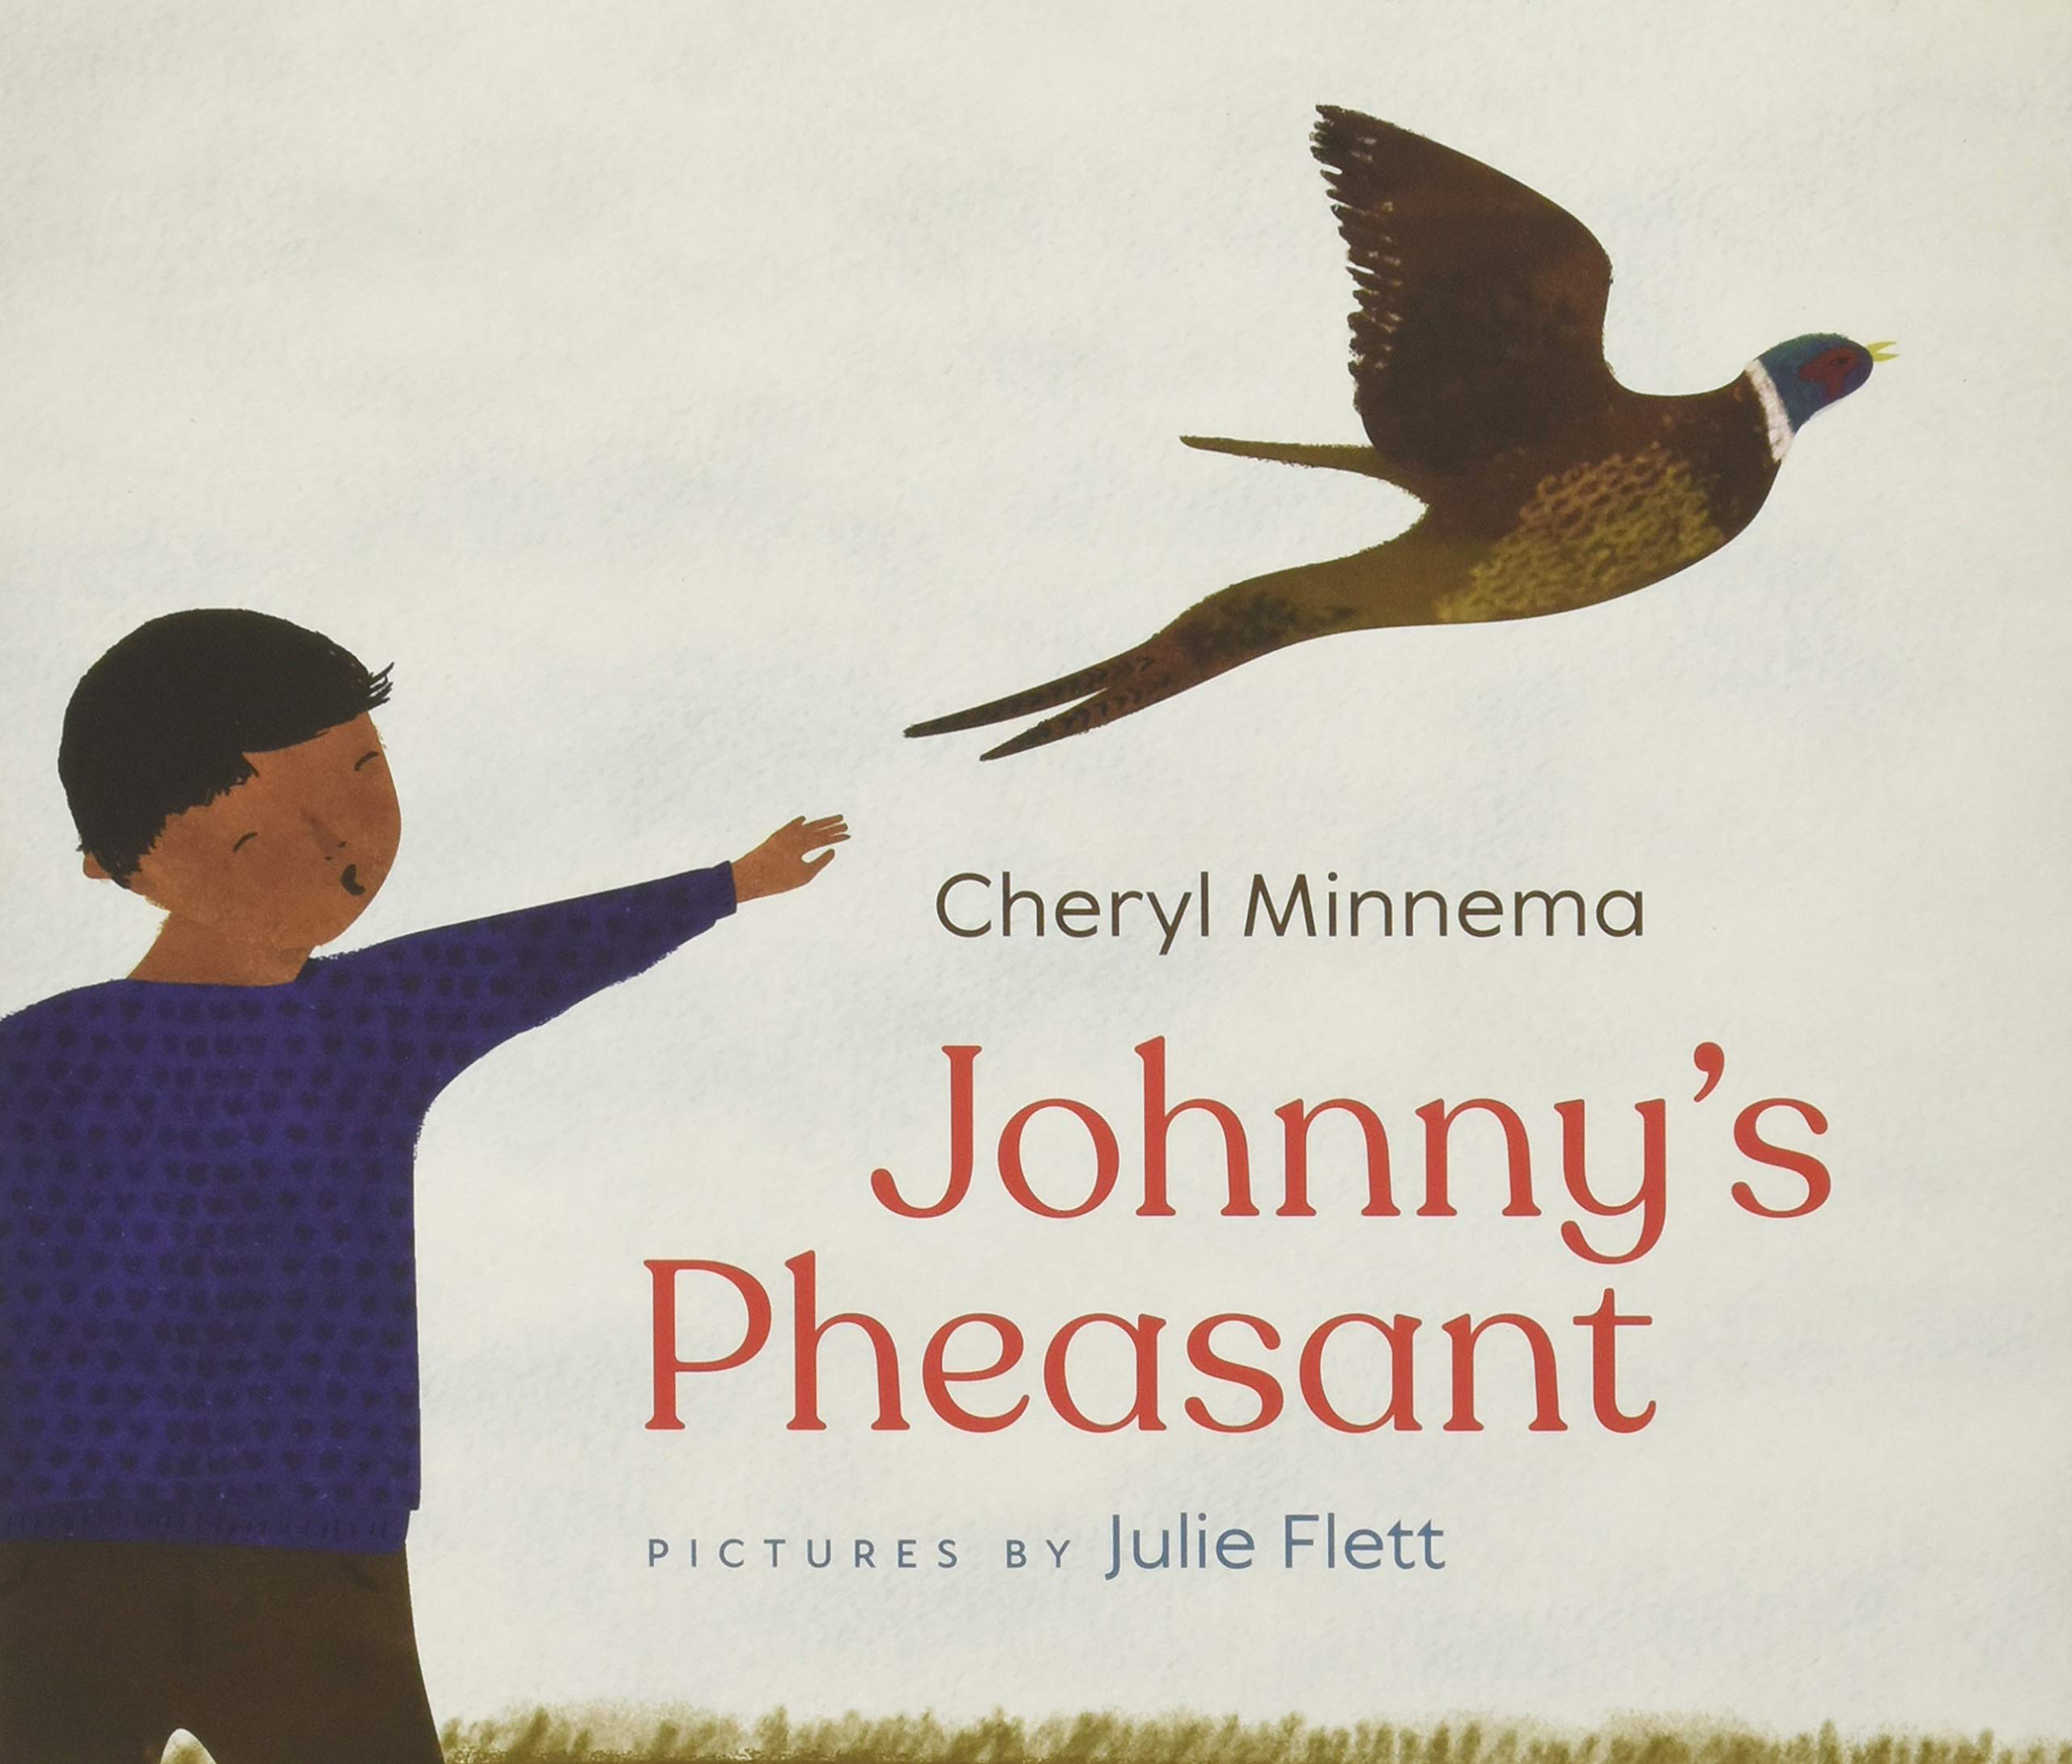 Johnny's Pheasant by Cheryl Minnema